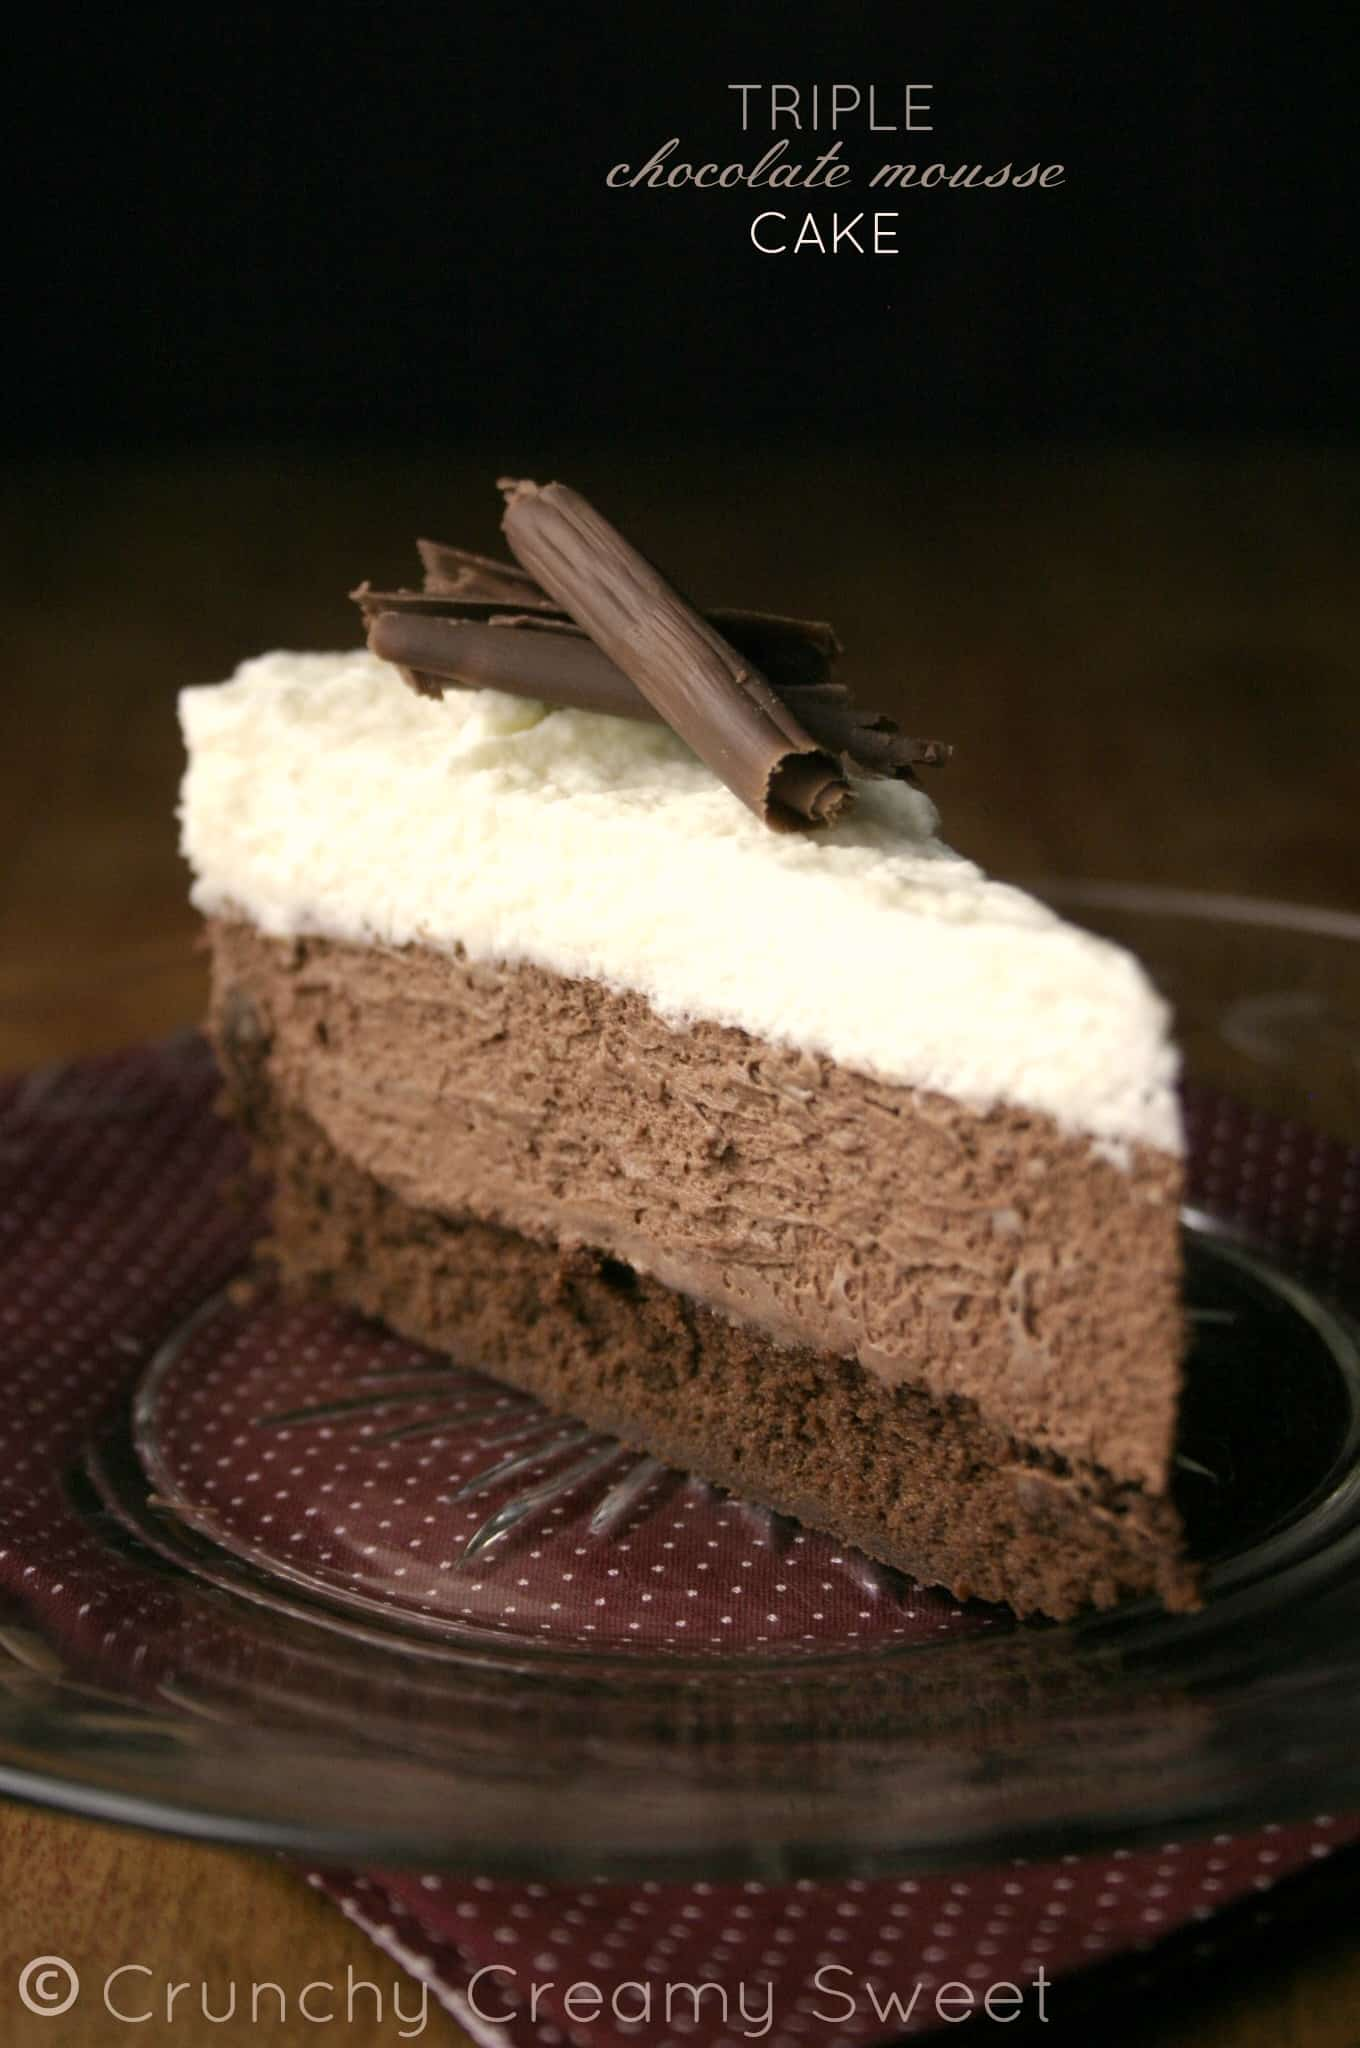 triple mousse 6 Triple Chocolate Mousse Cake